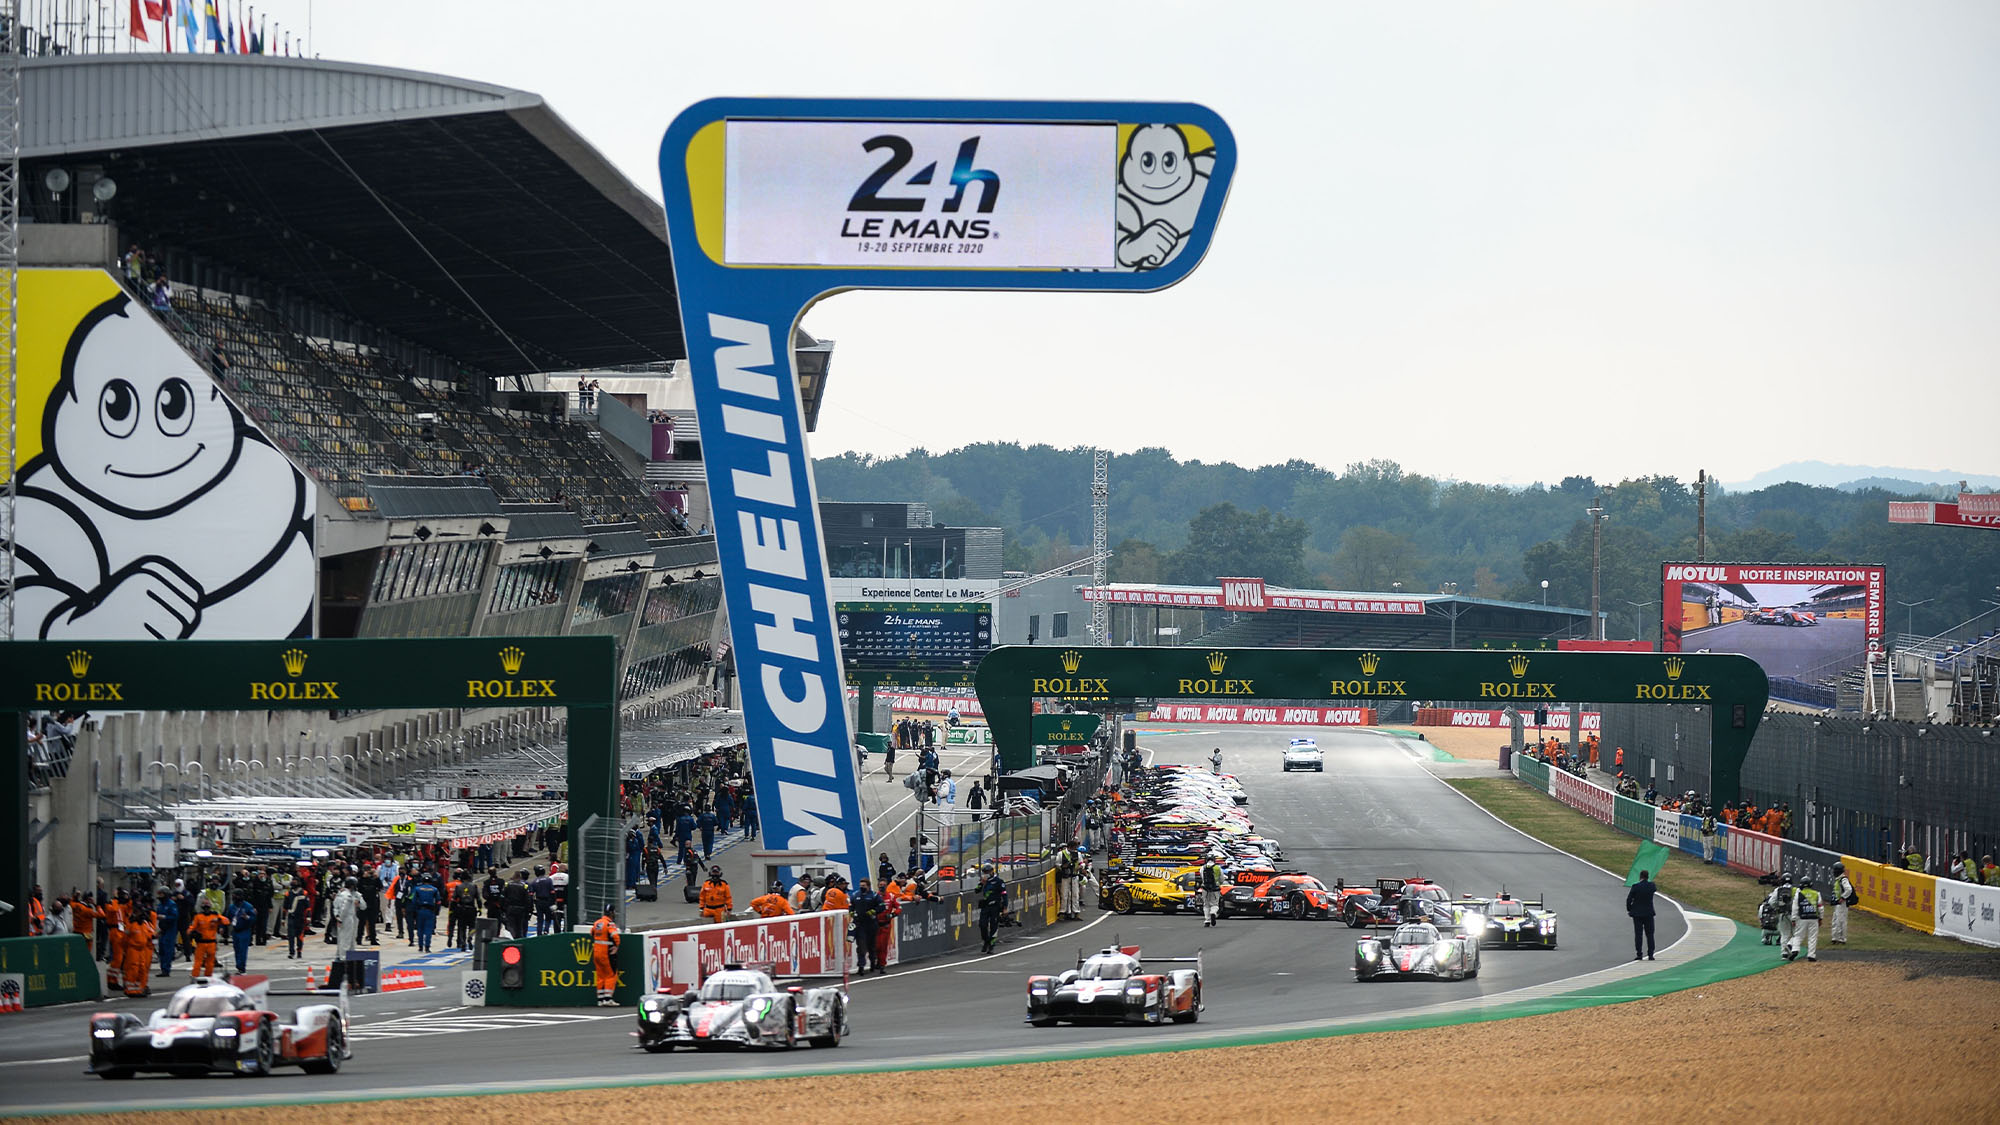 Drivers leave the pit lane for the warm up lap prior to the start of the 88th edition of the Le Mans 24 Hours race on September 19, 2020 at the La Sarthe circuit in Le Mans, in front of empty stands with Covid-19 keeping away the motorsport classic's normal crowd of 250,000 diehard fans. (Photo by JEAN-FRANCOIS MONIER / AFP) (Photo by JEAN-FRANCOIS MONIER/AFP via Getty Images)